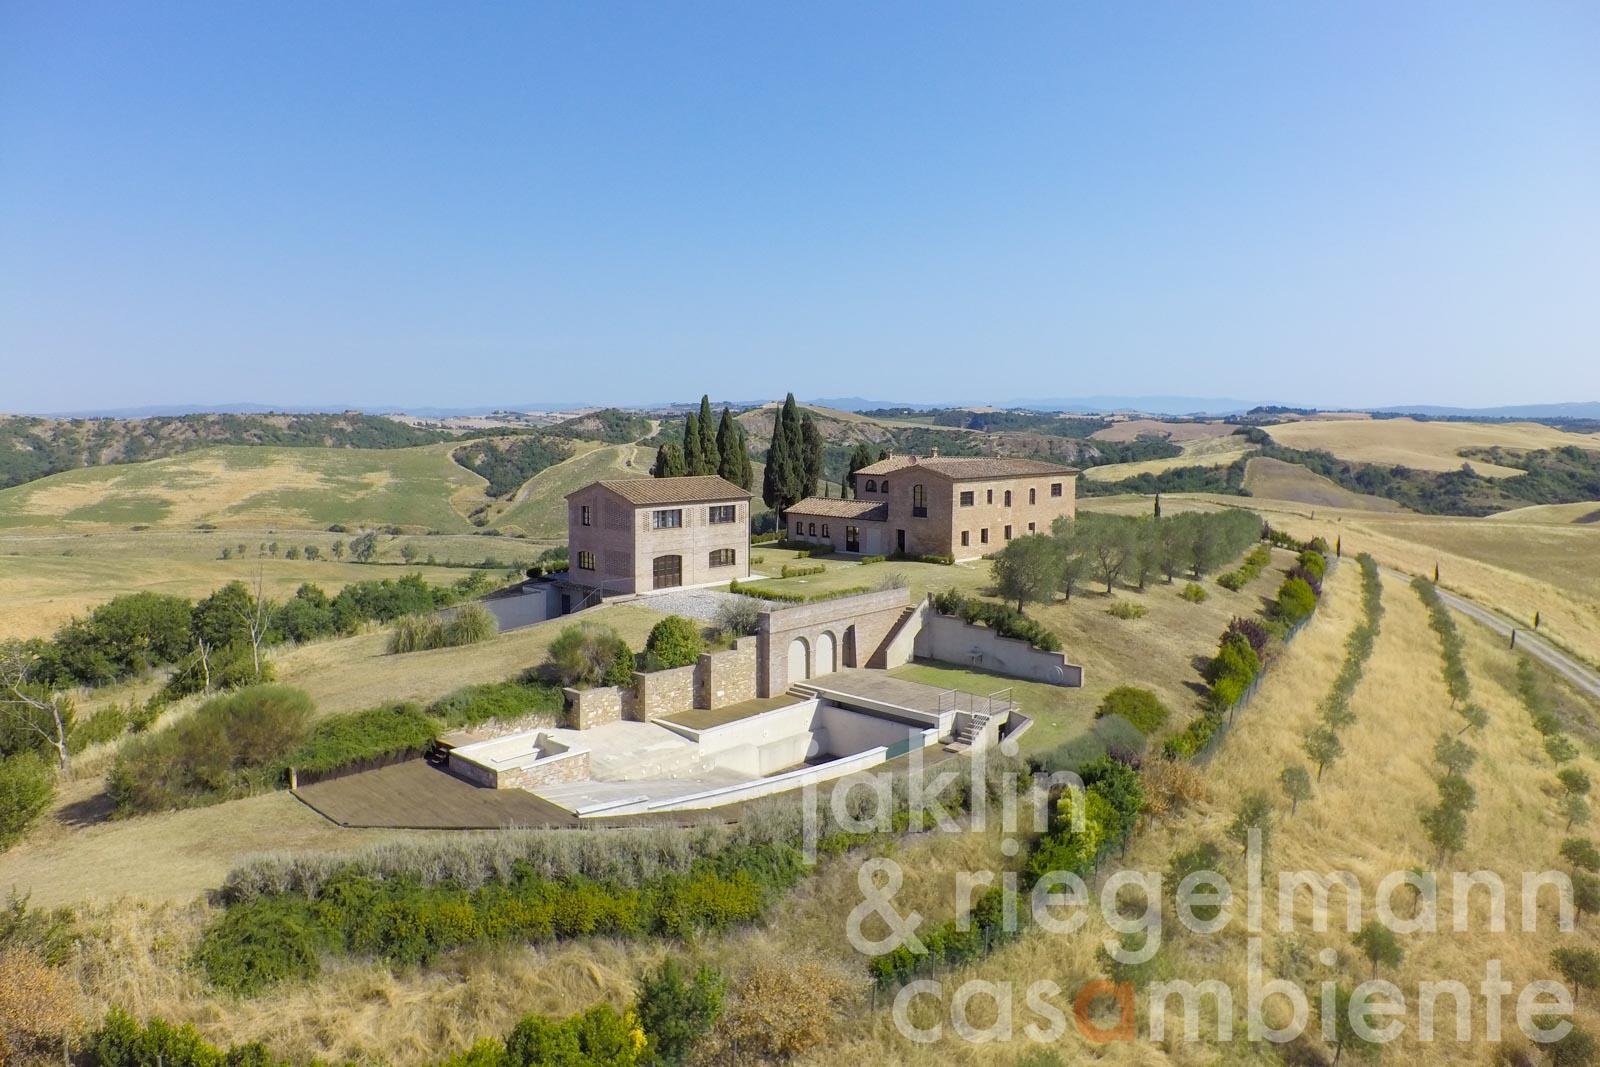 The luxurious country house for sale with full panoramic view and swimming pool near Siena in Tuscany